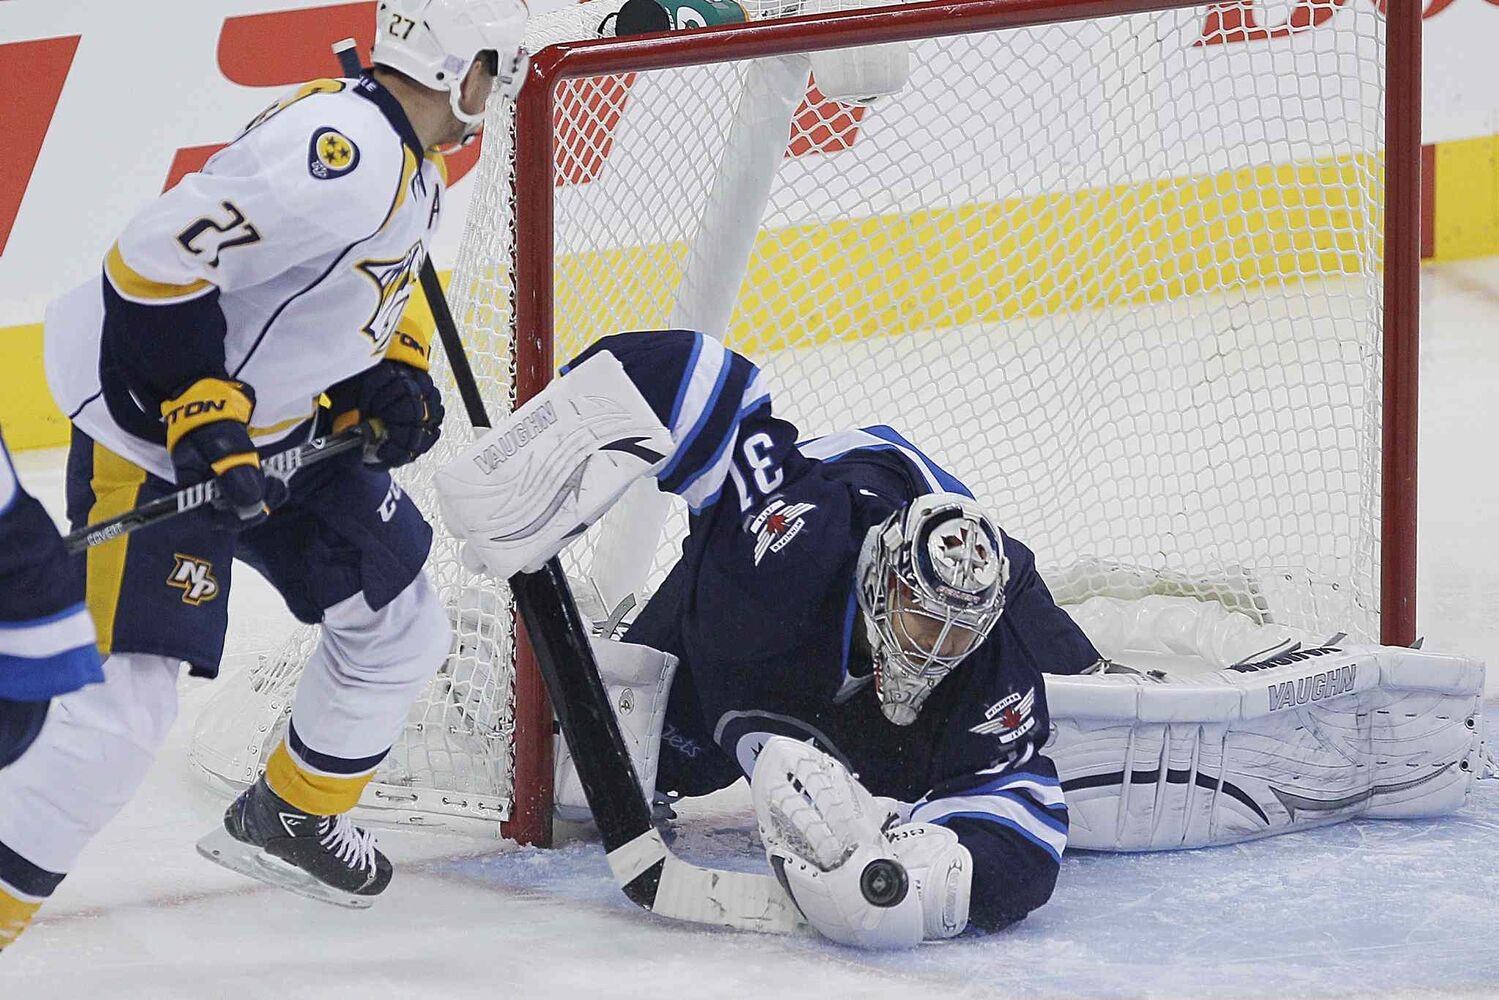 Winnipeg Jets' goaltender Ondrej Pavelec (31) stops the shot as Nashville Predators Patric Hornqvist (27) looks for the rebound during the first period. (JOHN WOODS / WINNIPEG FREE PRESS)